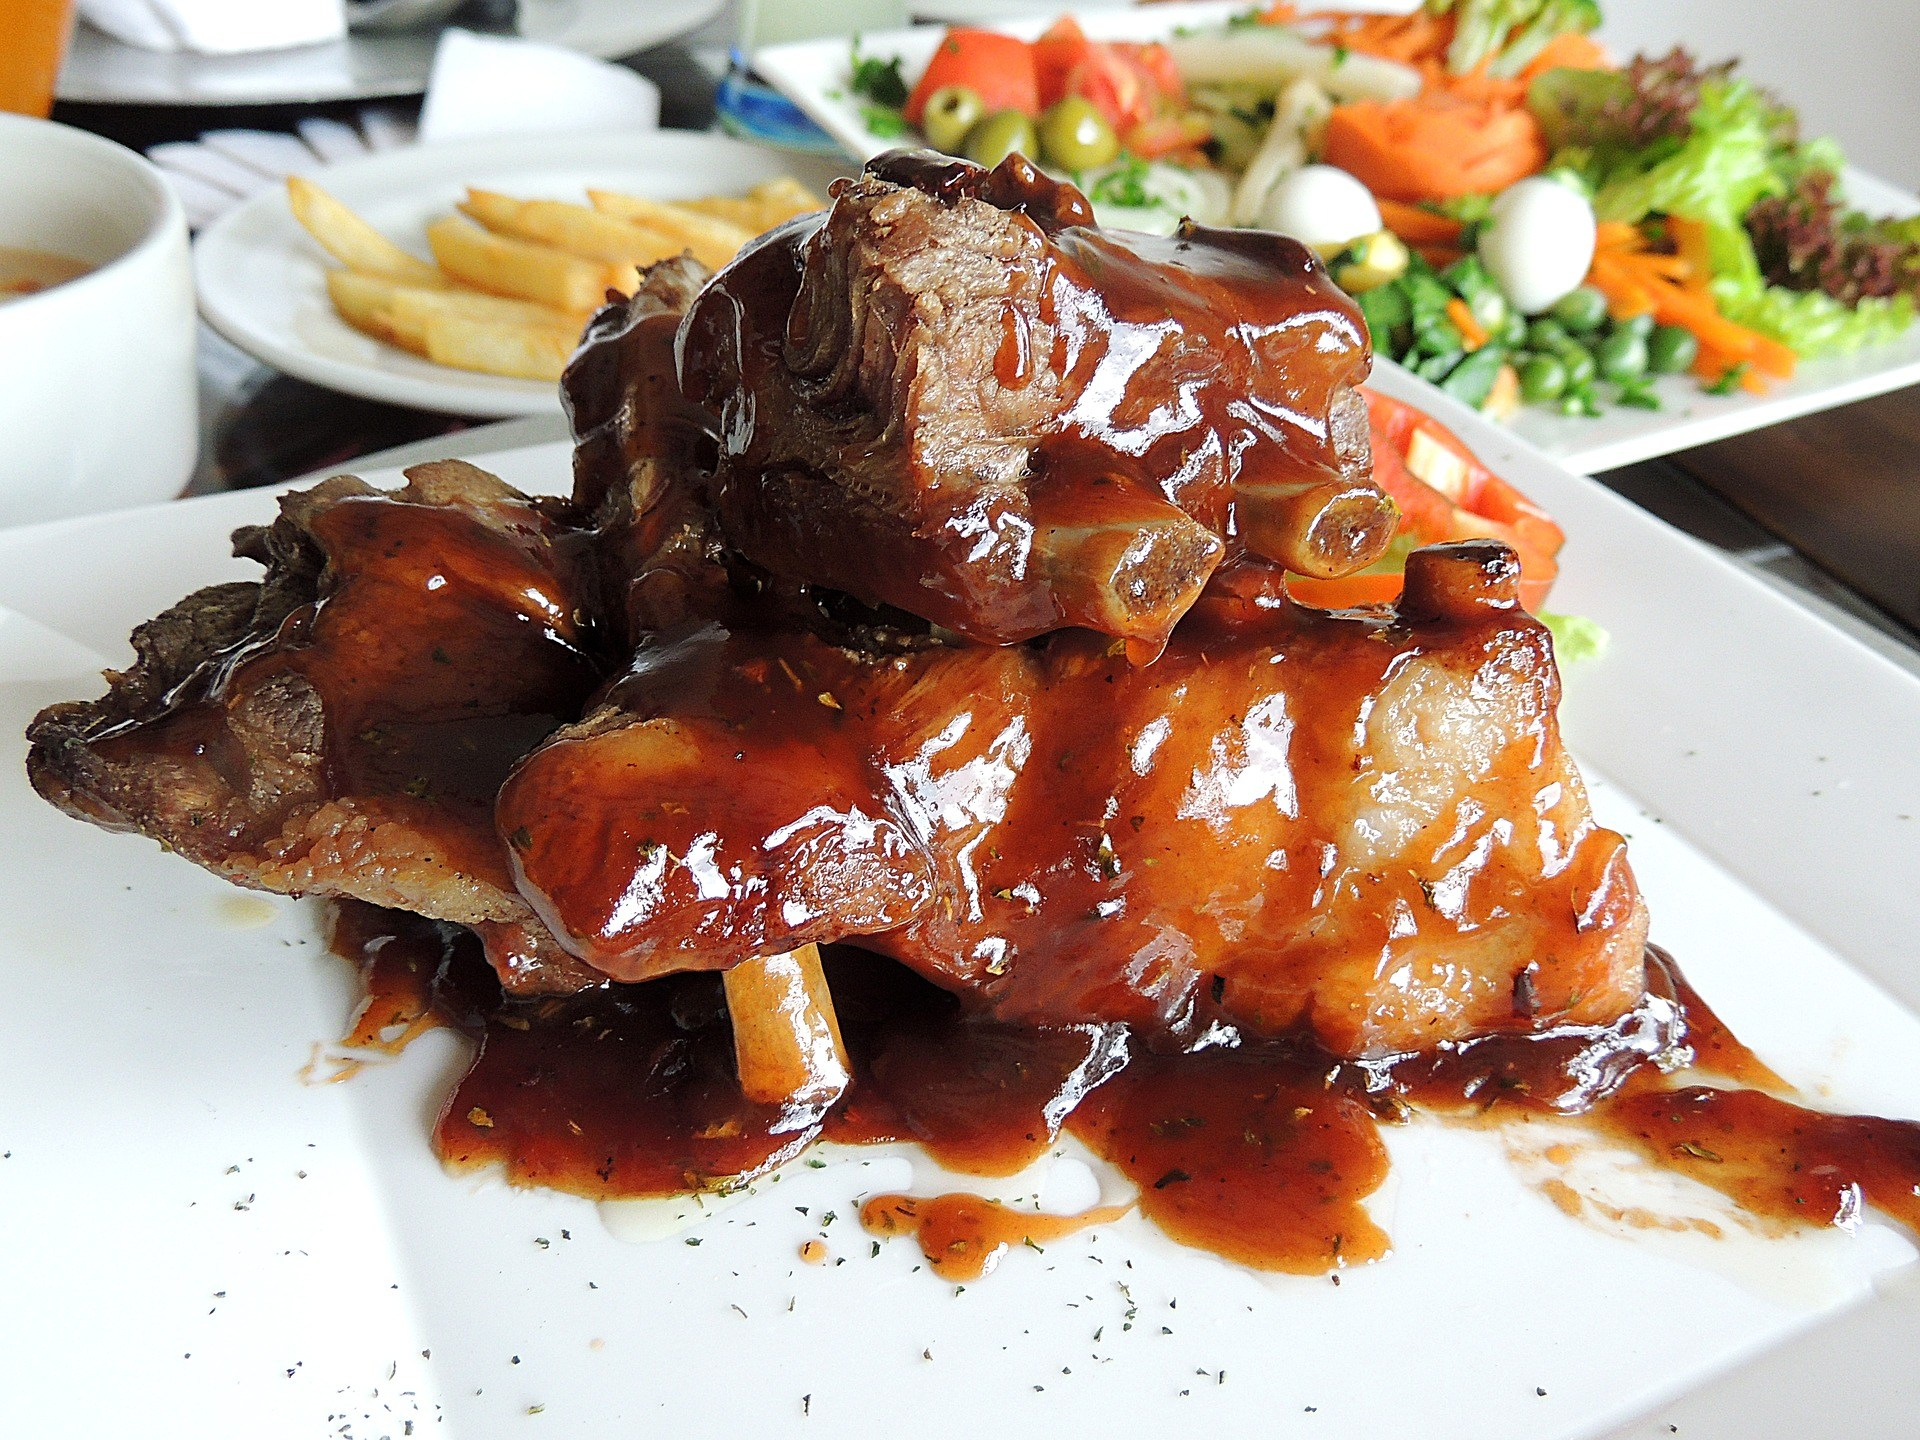 A ribs platter seeming delicious, with all the smoky barbecue effect